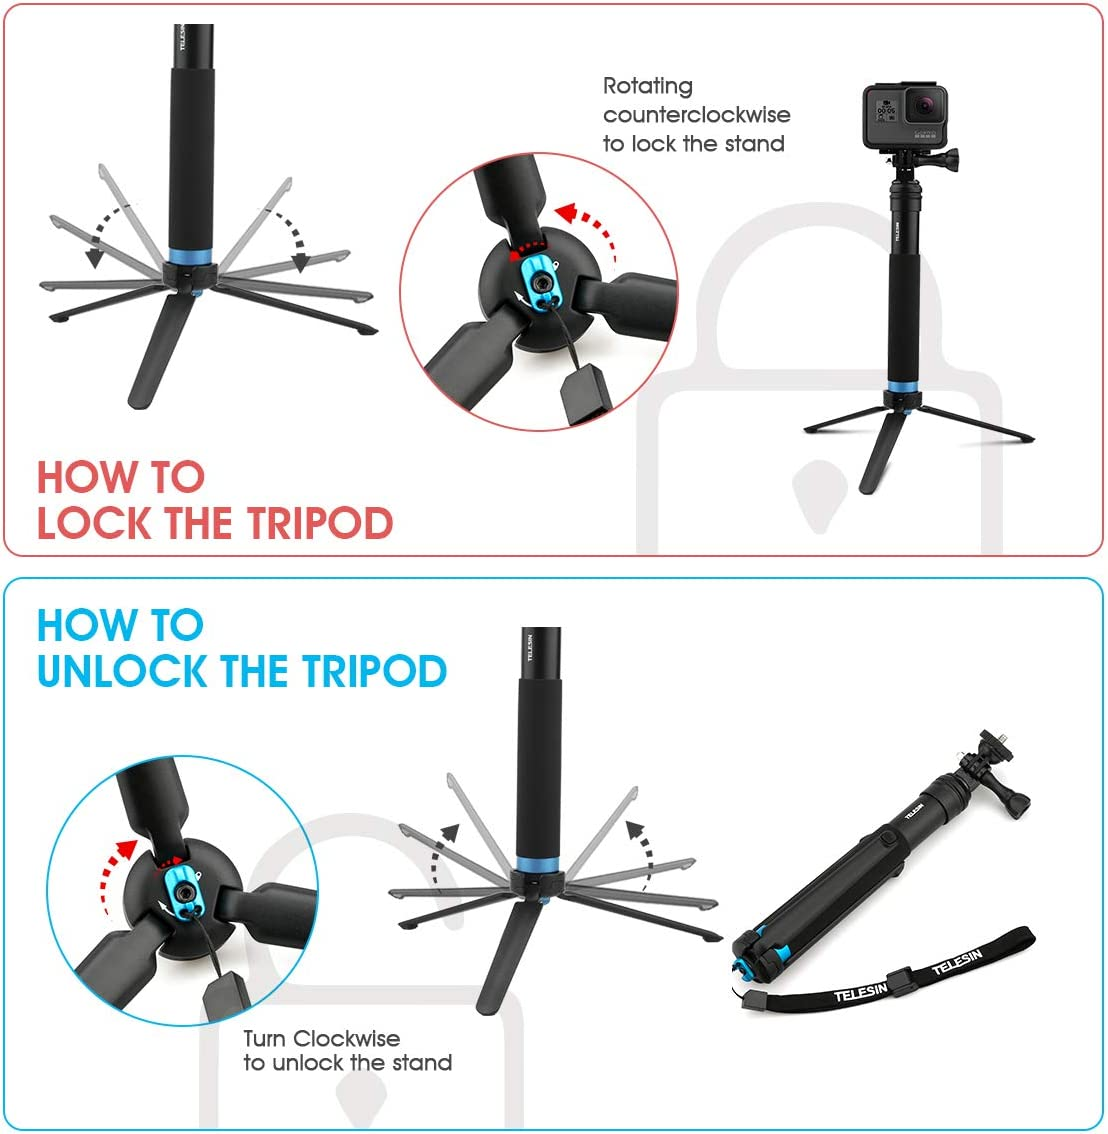 AFAITH Upgraded Pole for GoPro, Aluminum Alloy GoPro Selfie Stick with Stable Tripod Waterproof Handheld Monopod for GoPro Hero 8 Black/Hero 9 Black/7/6/5/4/ Osmo Action Camera/Xiao Yi Action Camera : Camera & Photo